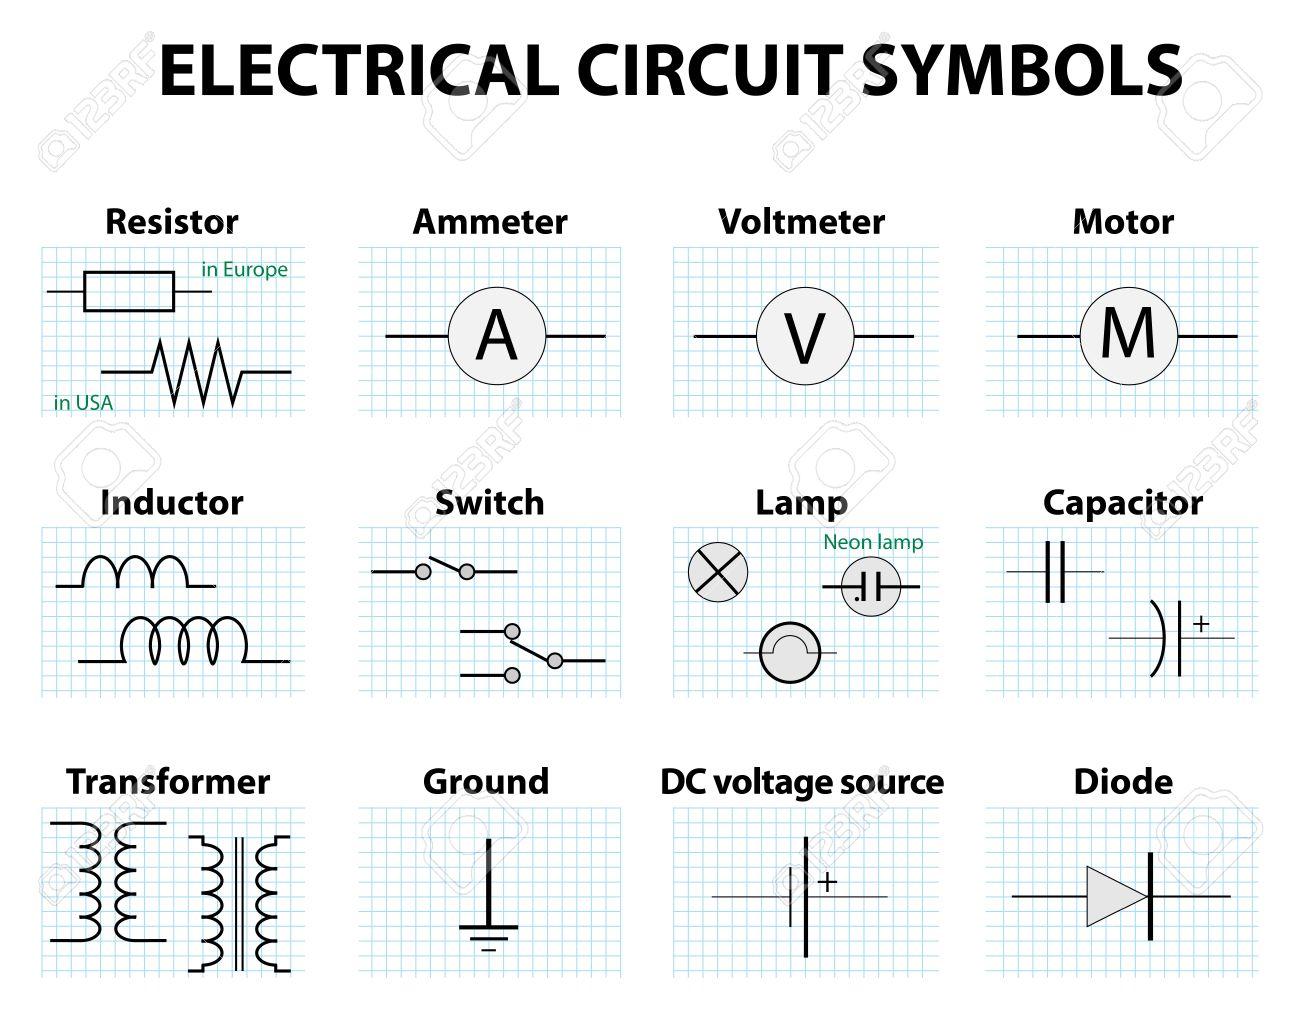 electronic symbol  electric circuit symbol element set  pictogram used to  represent electrical and electronic